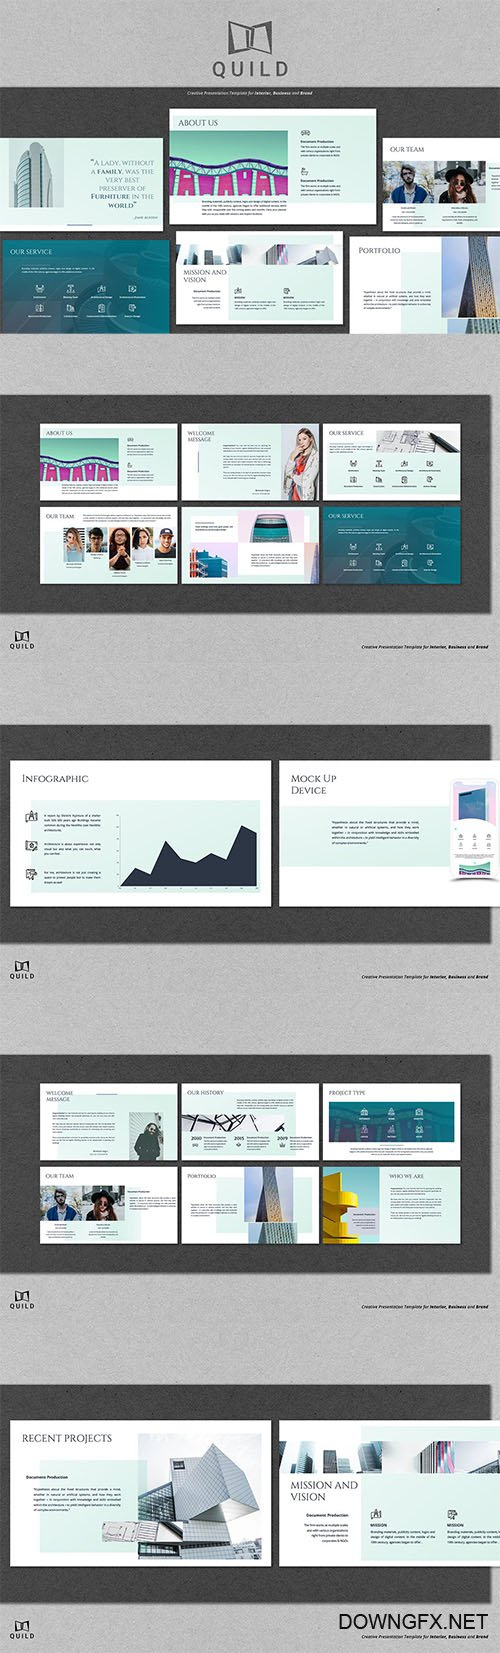 Quild PowerPoint Template